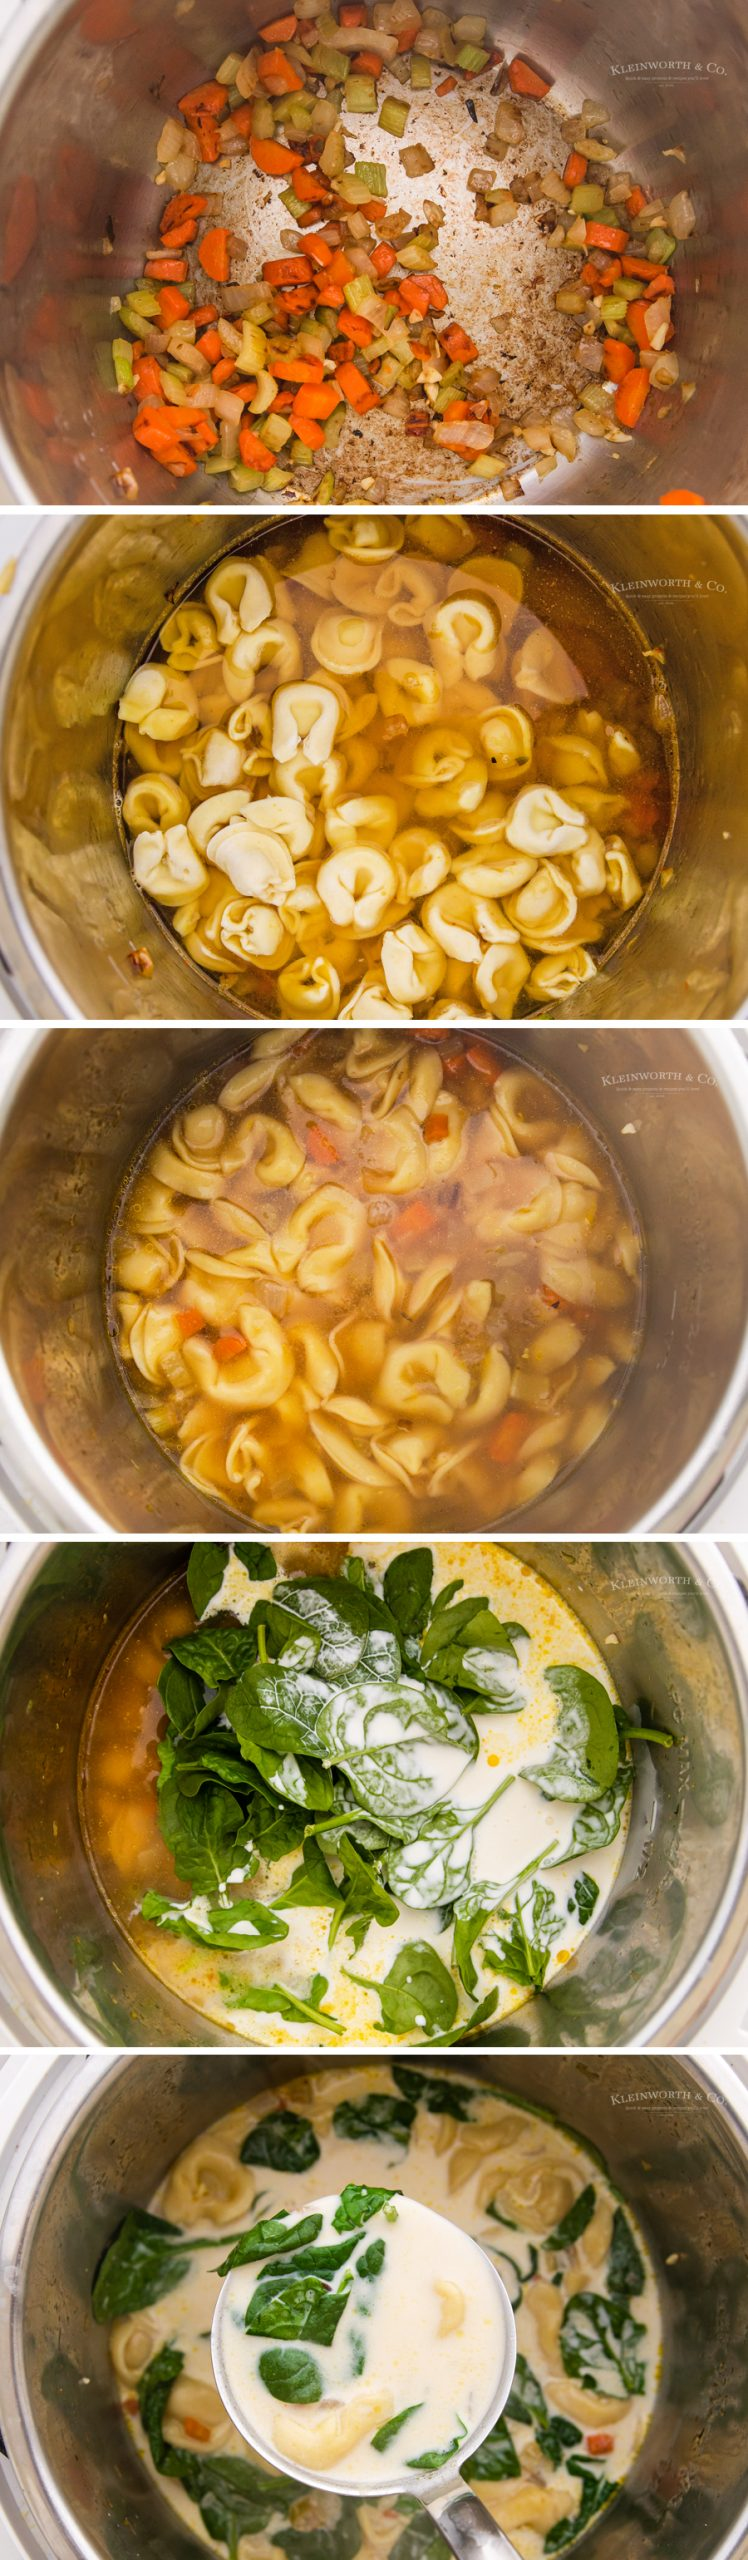 how to make Instant Pot Spinach Tortellini Soup